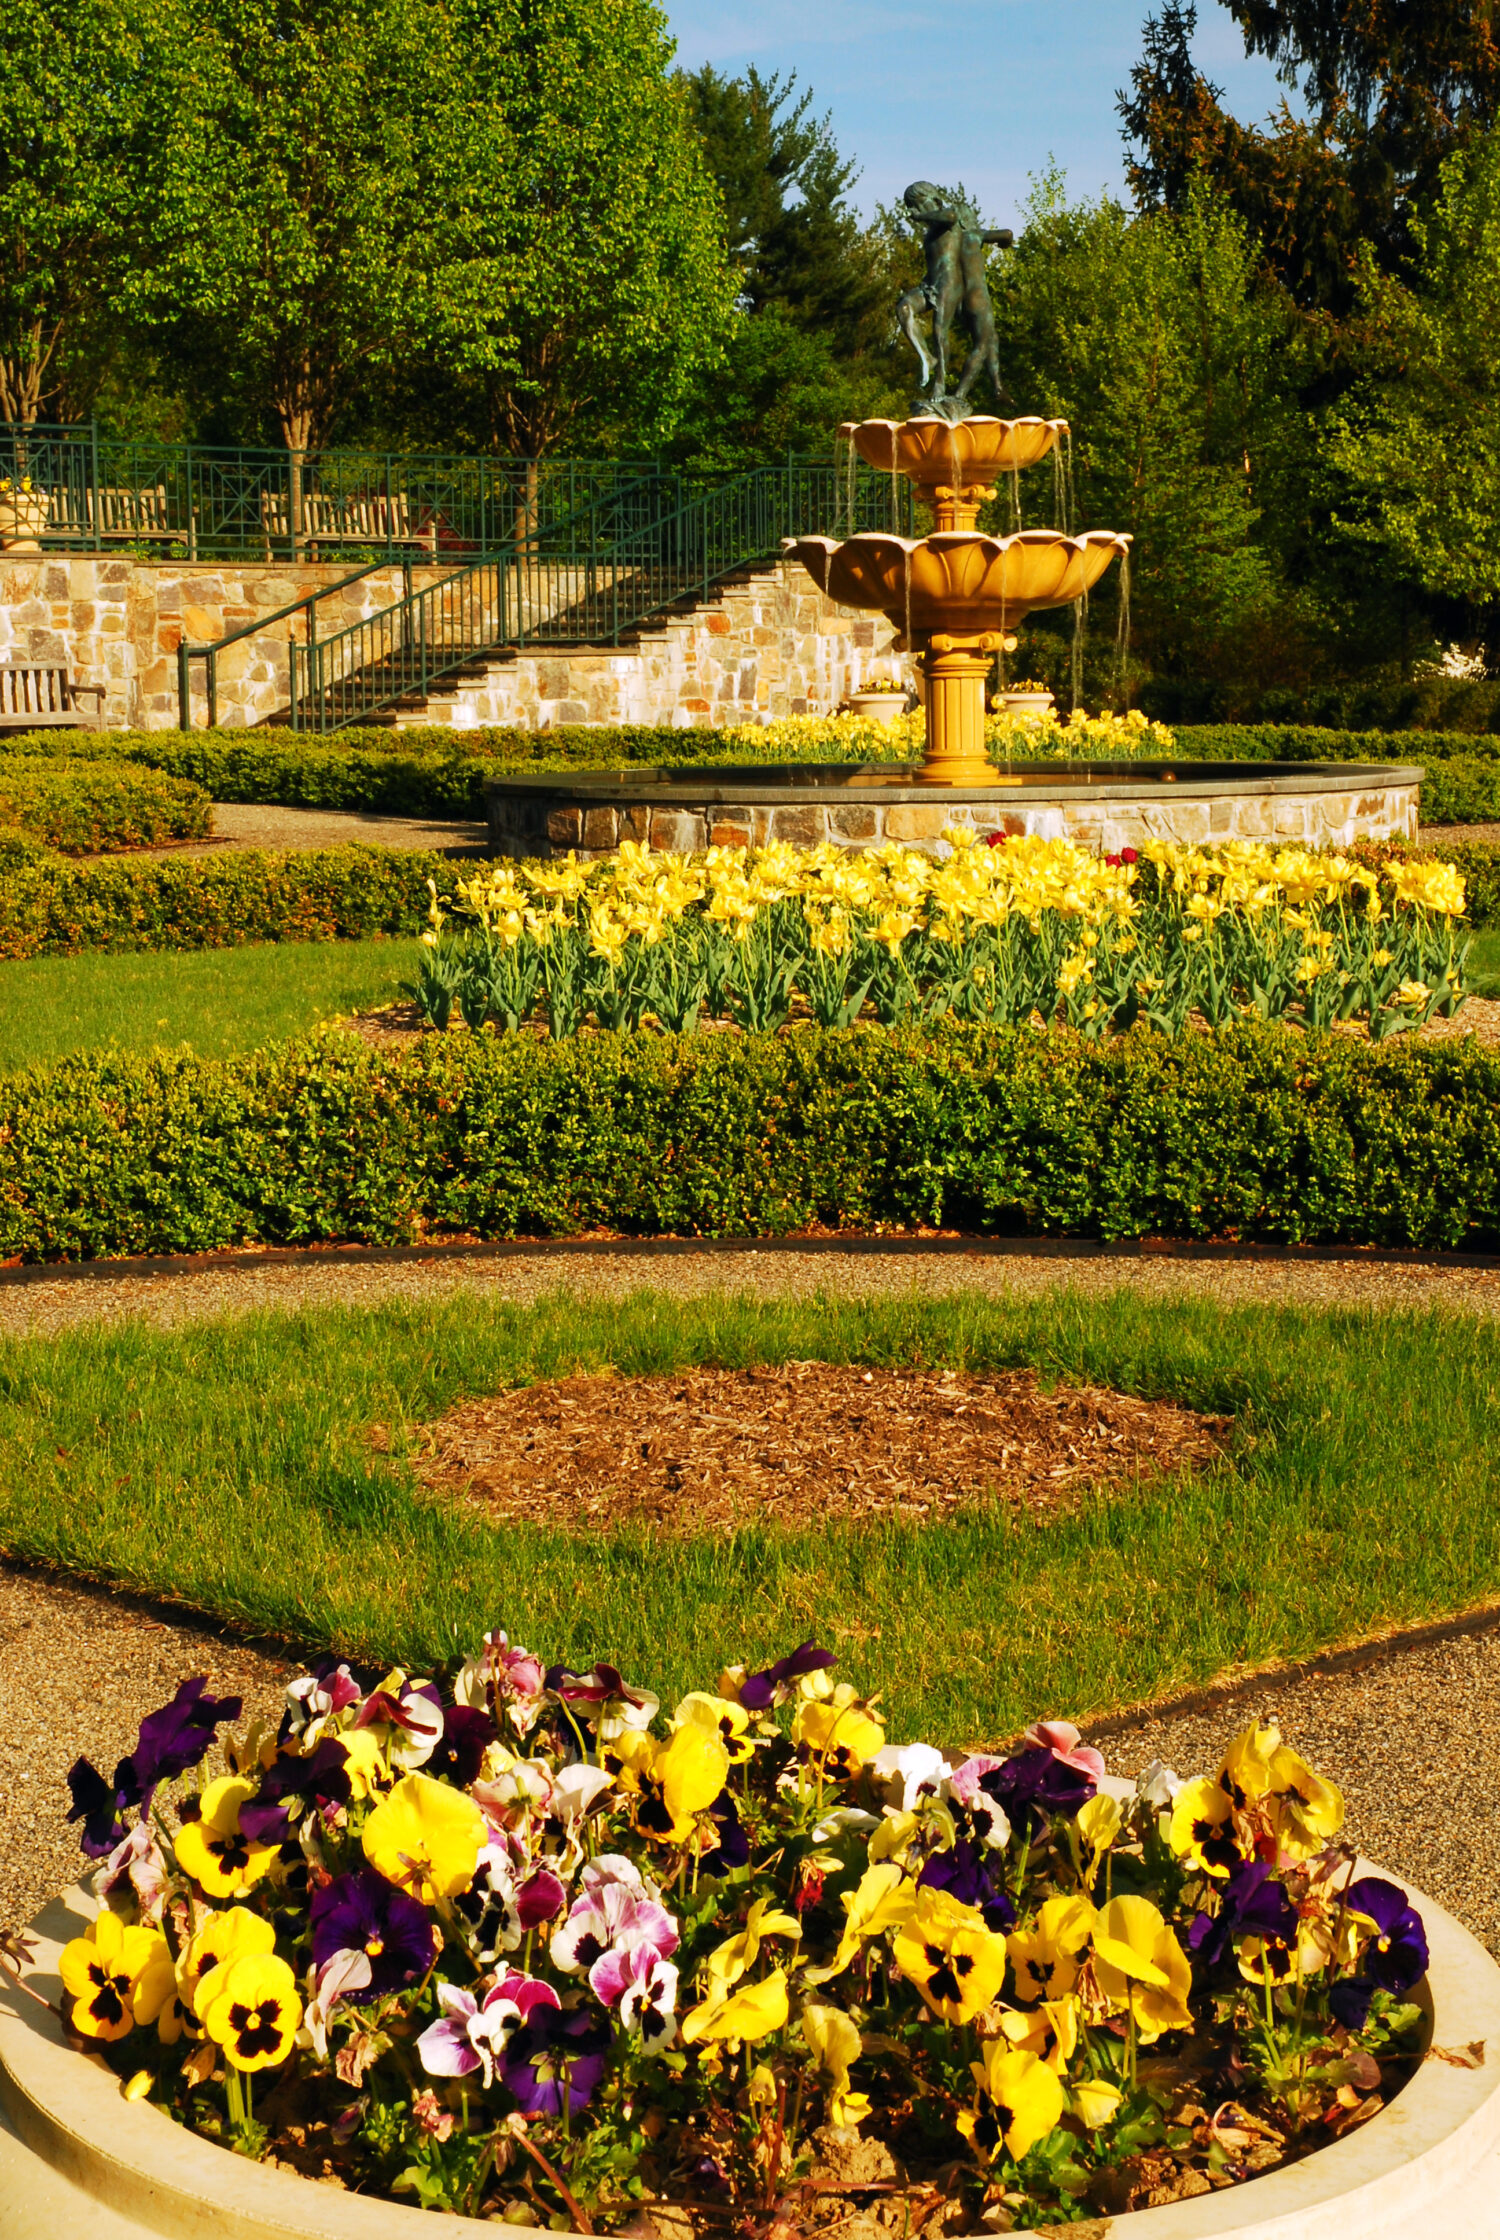 The charming gardens of Ladson Arboretum and Garden in Katonah New York, comes to life in the spring and summer